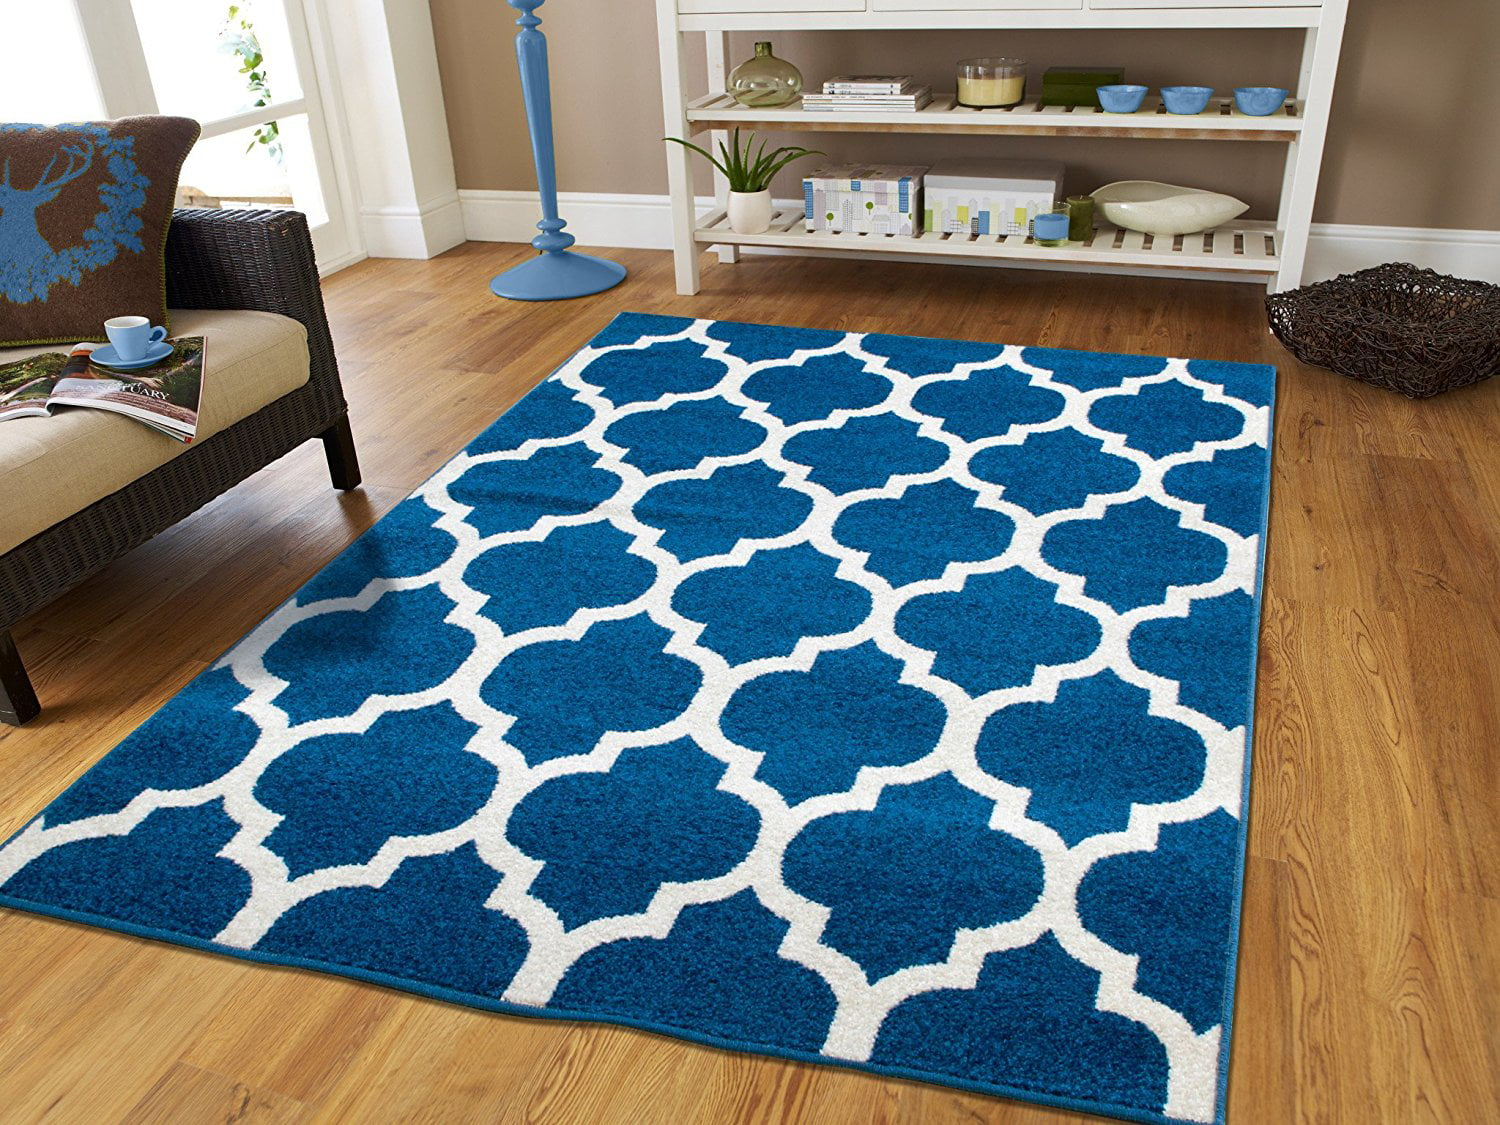 Contemporary Area Rugs 5x7 Area Rugs On Clearance 5 By 7 Rug For Living Room  Blue   Walmart.com